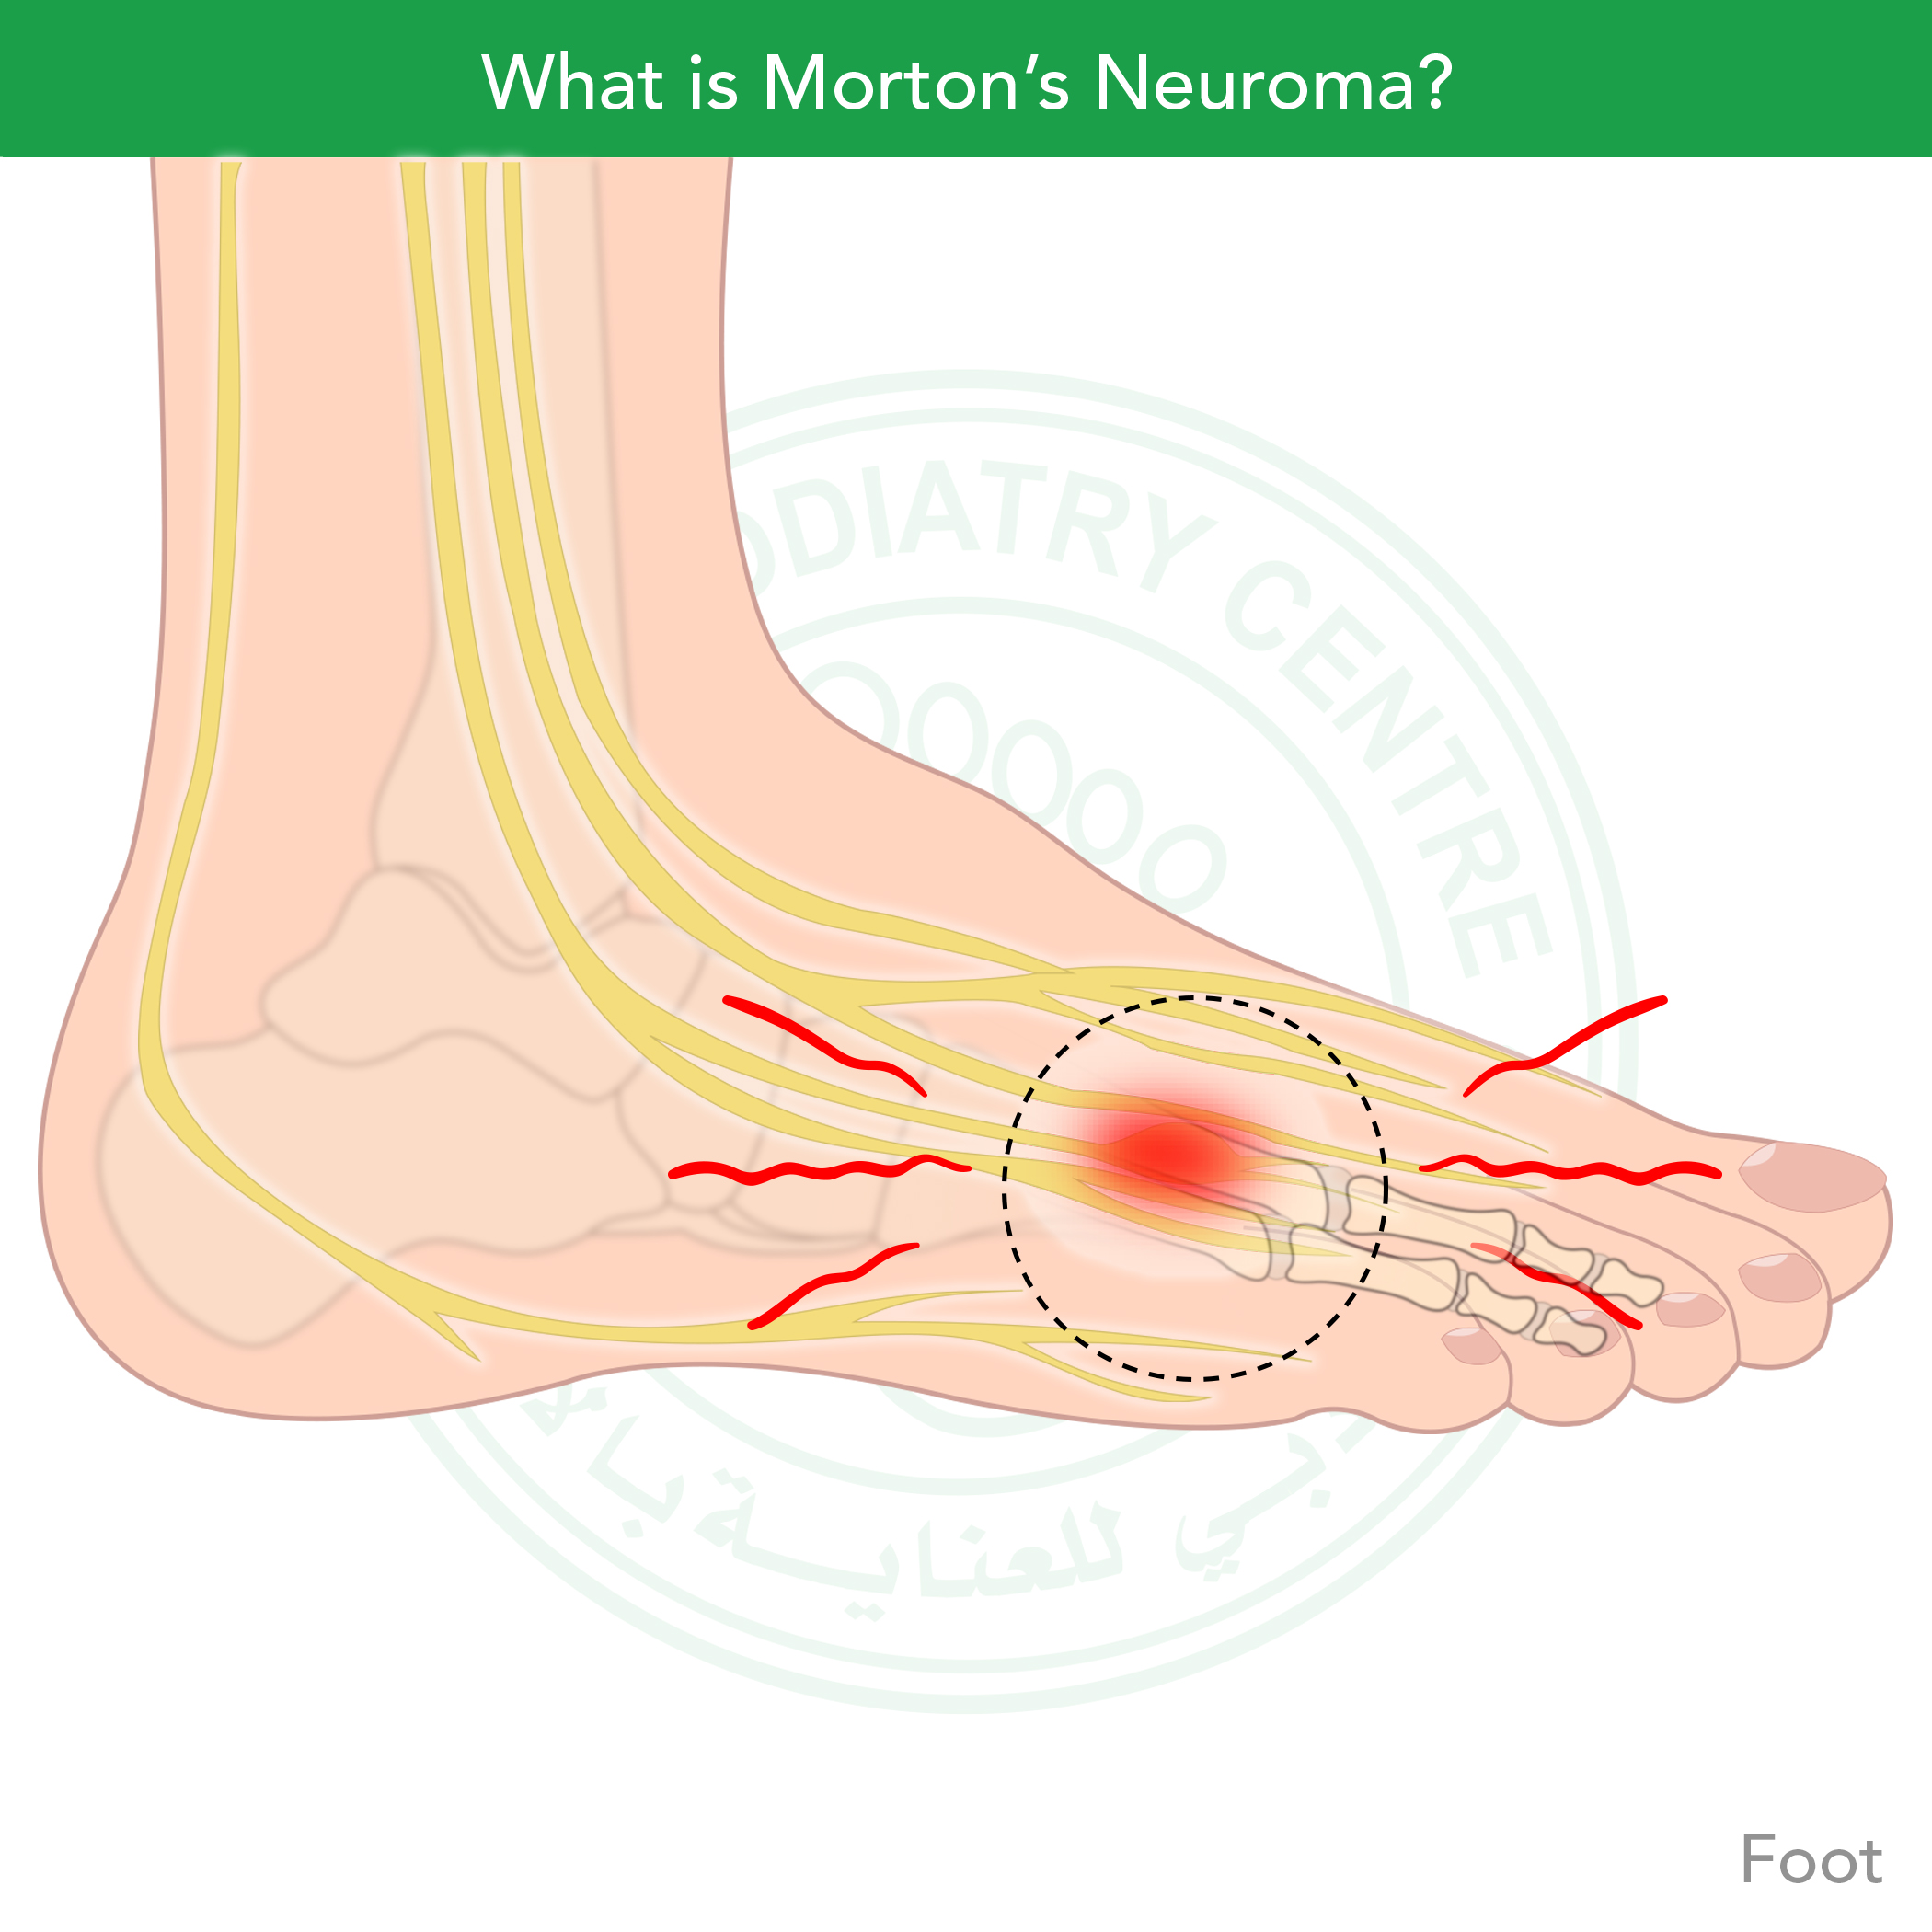 http://dubaipodiatry.com/wp-content/uploads/2019/03/DPC-voice-record_Mortons-Neuroma-21.jpg